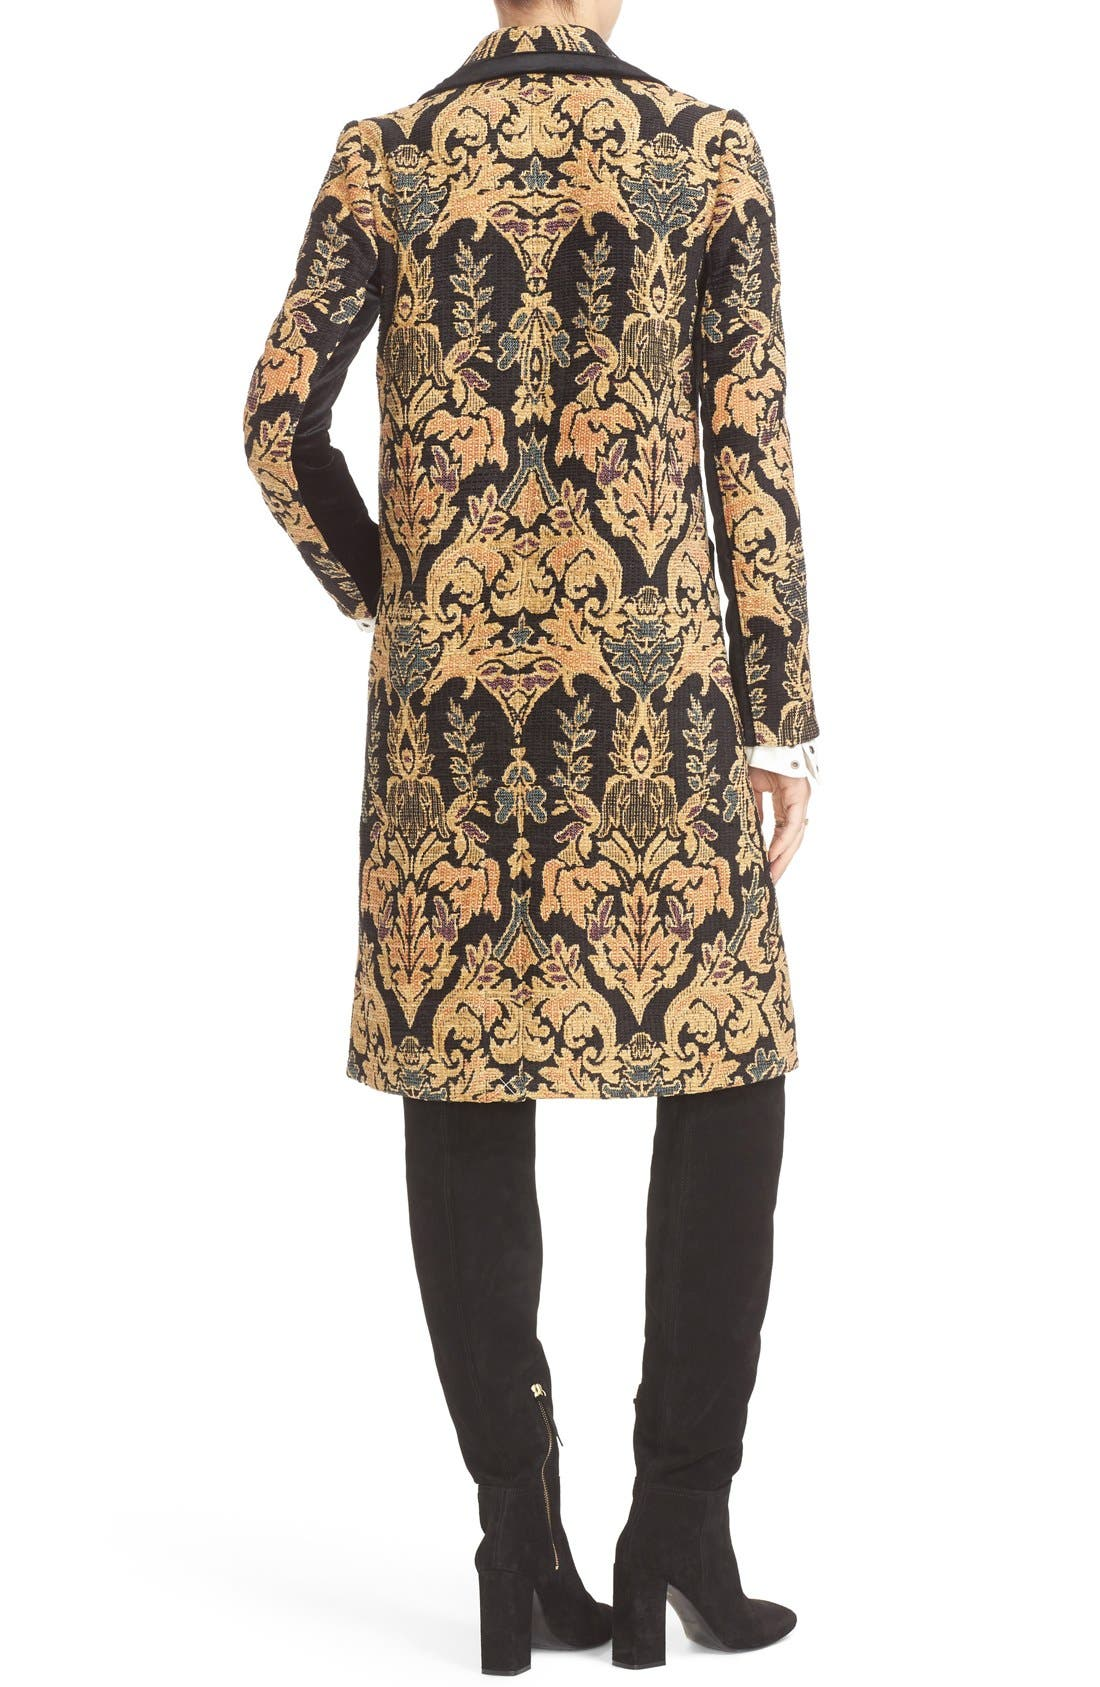 FREE PEOPLE,                             Jacquard Coat,                             Alternate thumbnail 4, color,                             001